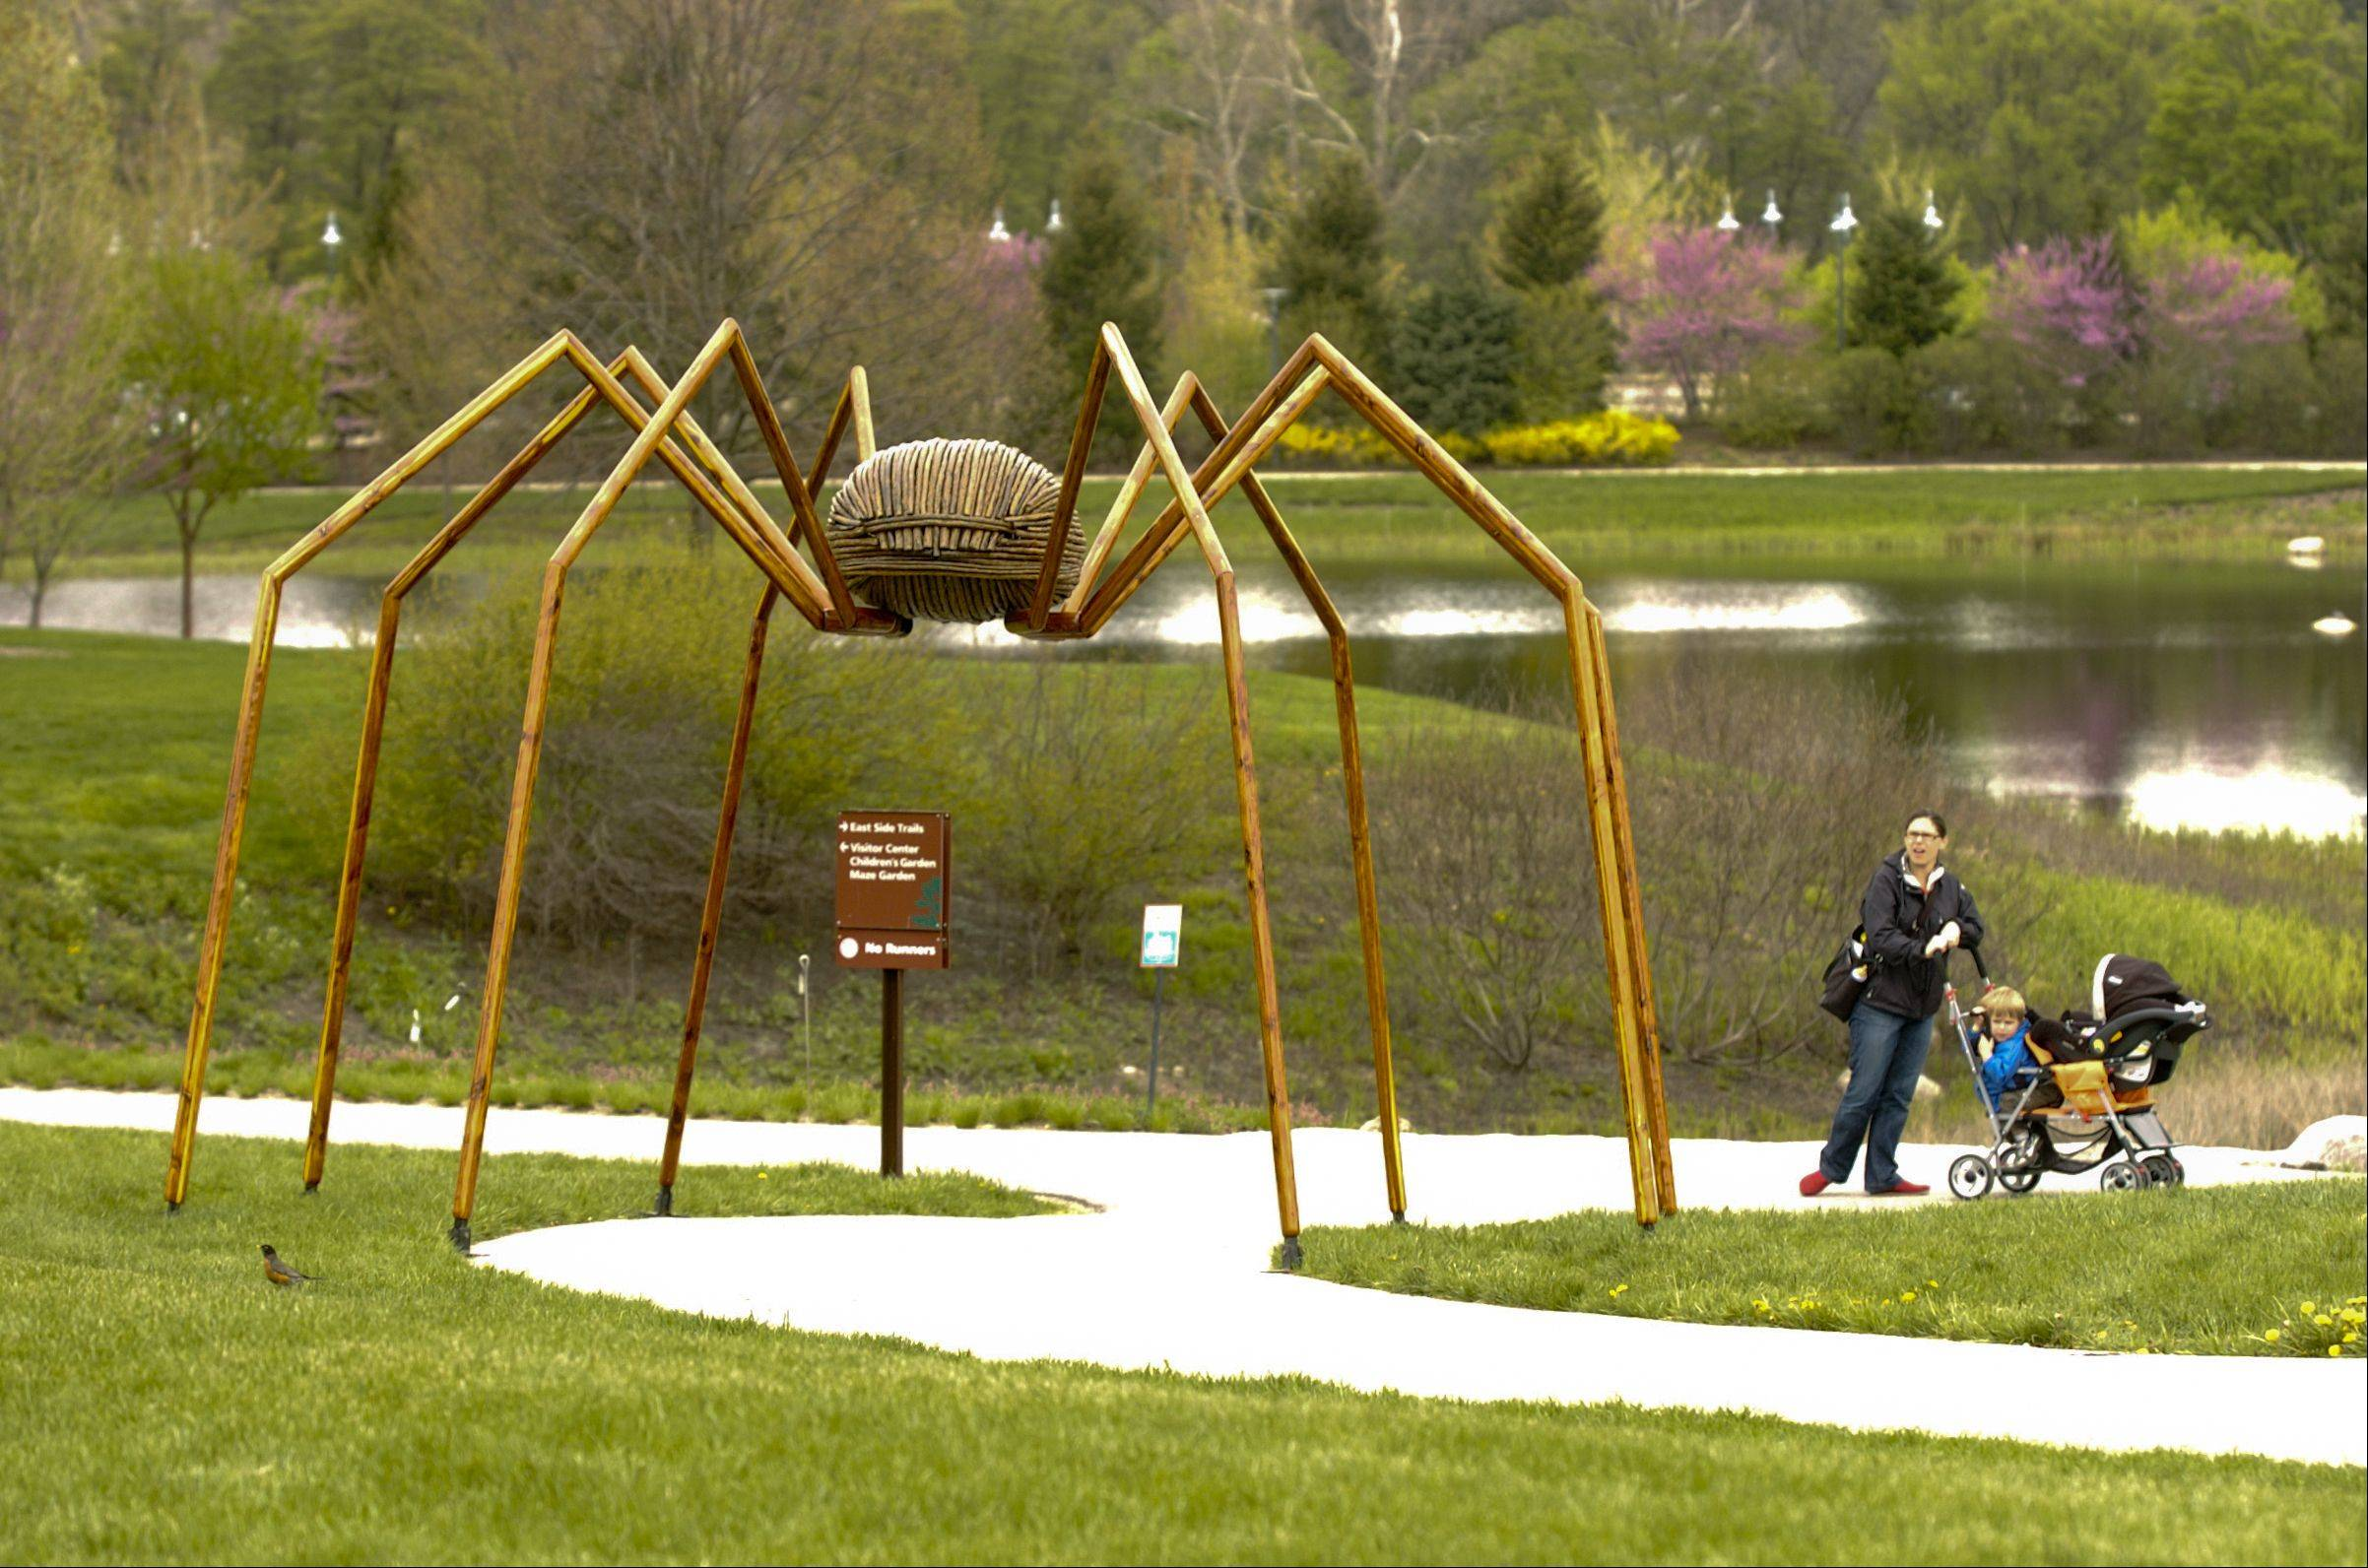 Visitors to the Morton Arboretum check out the huge daddy longlegs that is part of artist David Rogers' Big Bugs exhibition at the Morton Arboretum in Lisle.